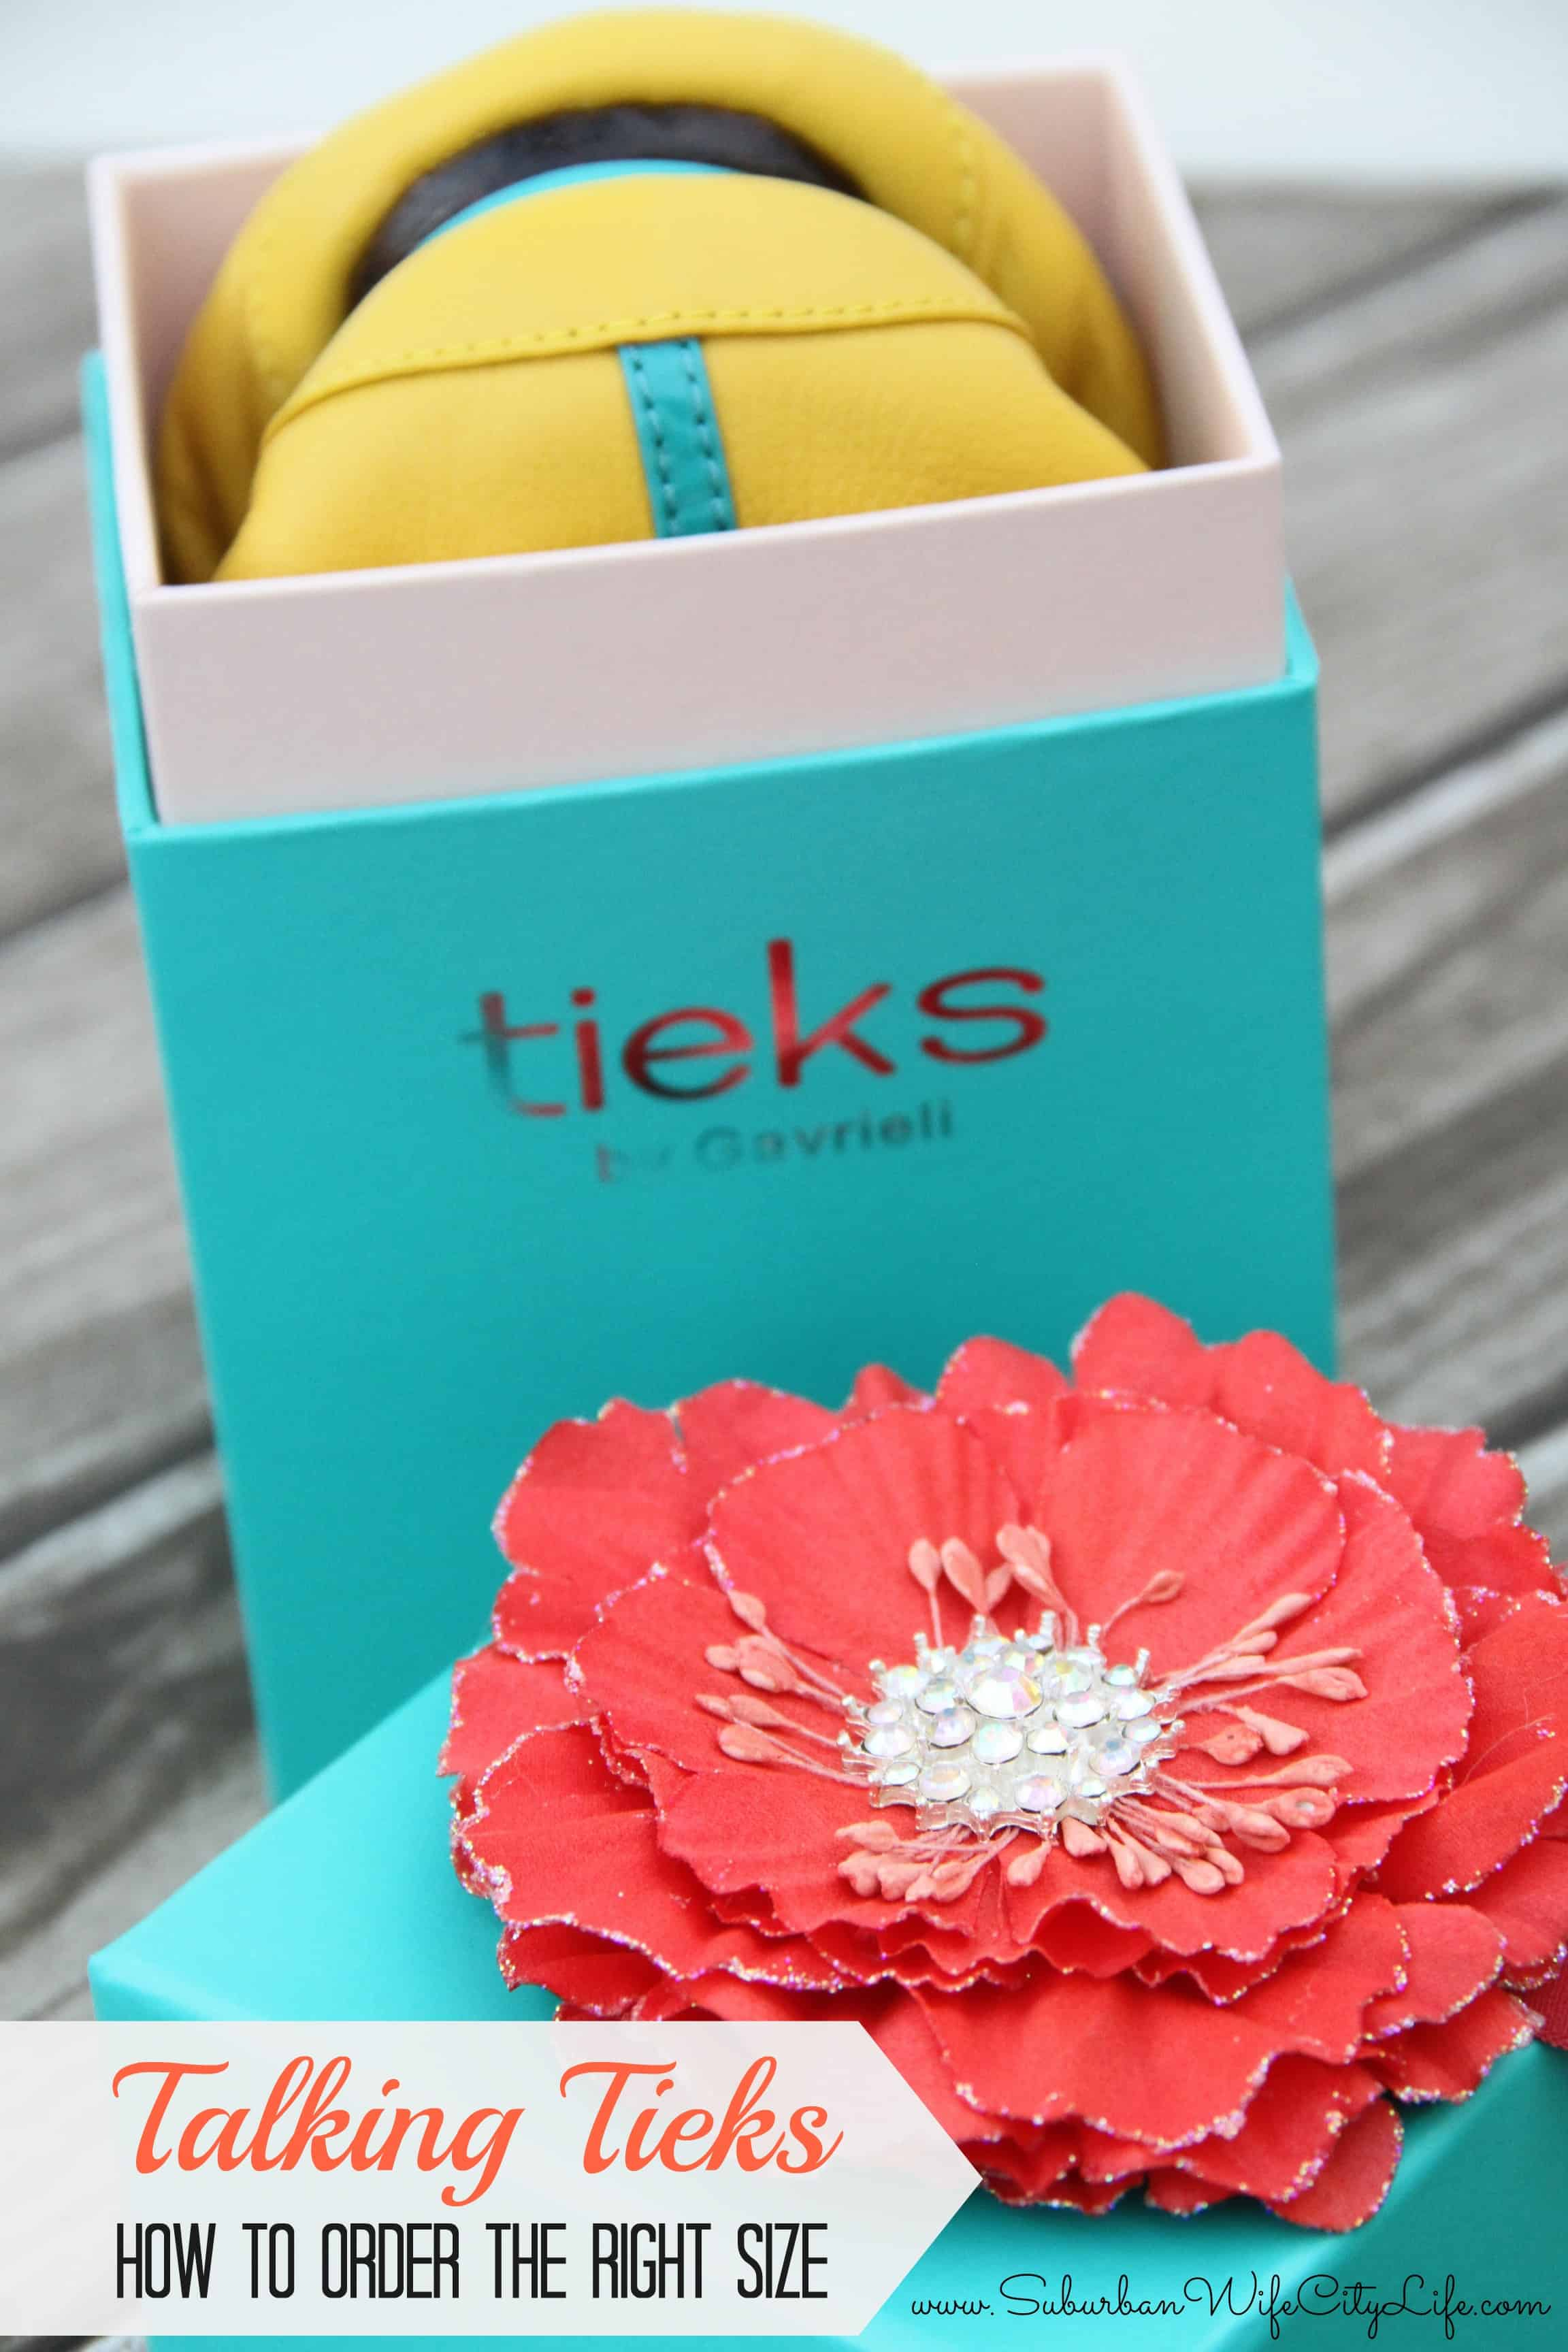 Tieks: How to order the right size - Suburban Wife, City Life